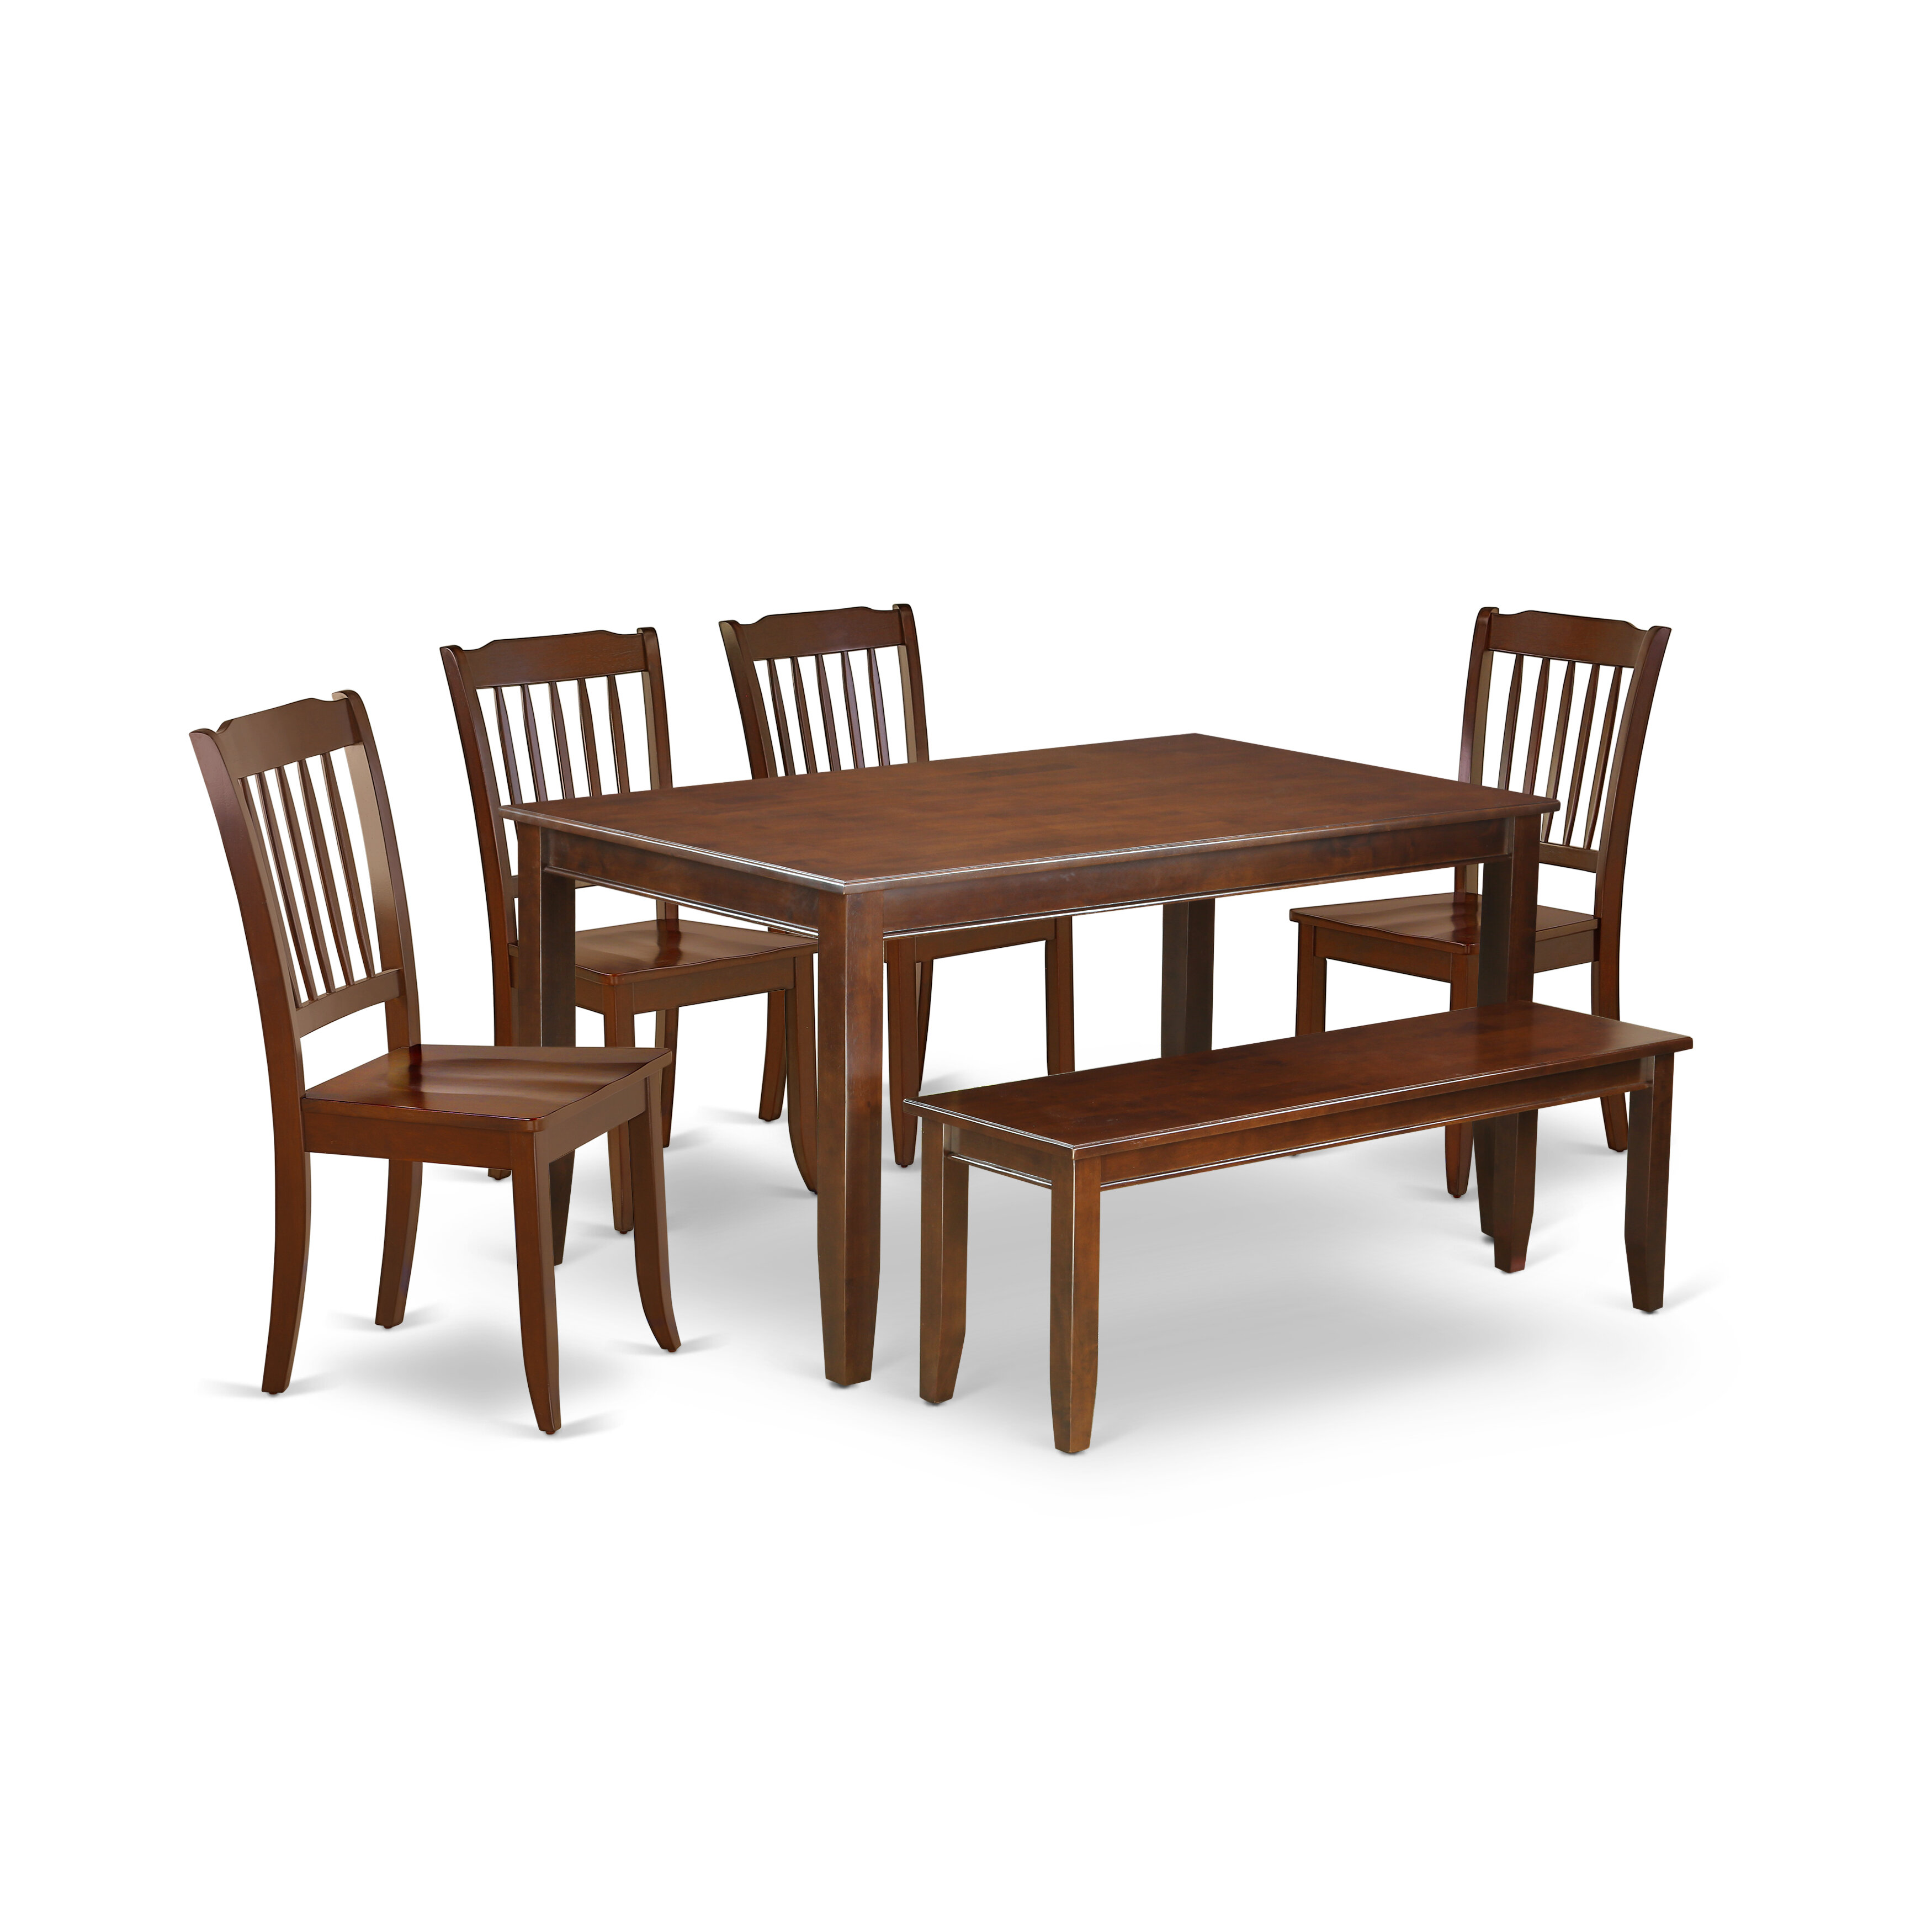 Tremendous Lamkin 6Pc Rectangular 60 Inch Table And 4 Vertical Slatted Chairs Plus 1 Bench Bralicious Painted Fabric Chair Ideas Braliciousco